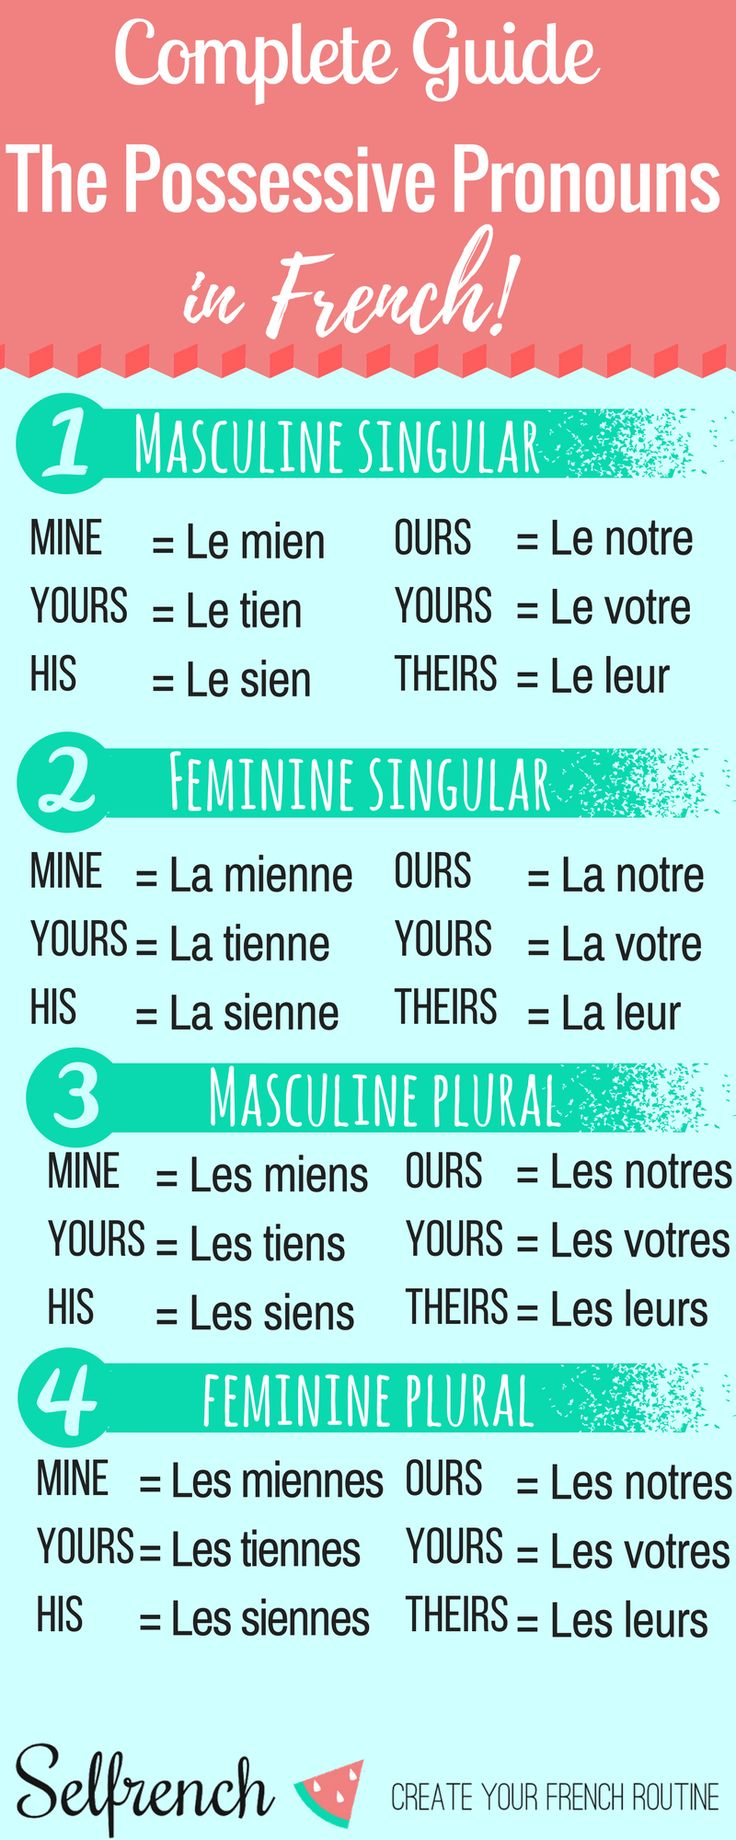 The Possessive Pronouns in French - Les pronoms possessif en français